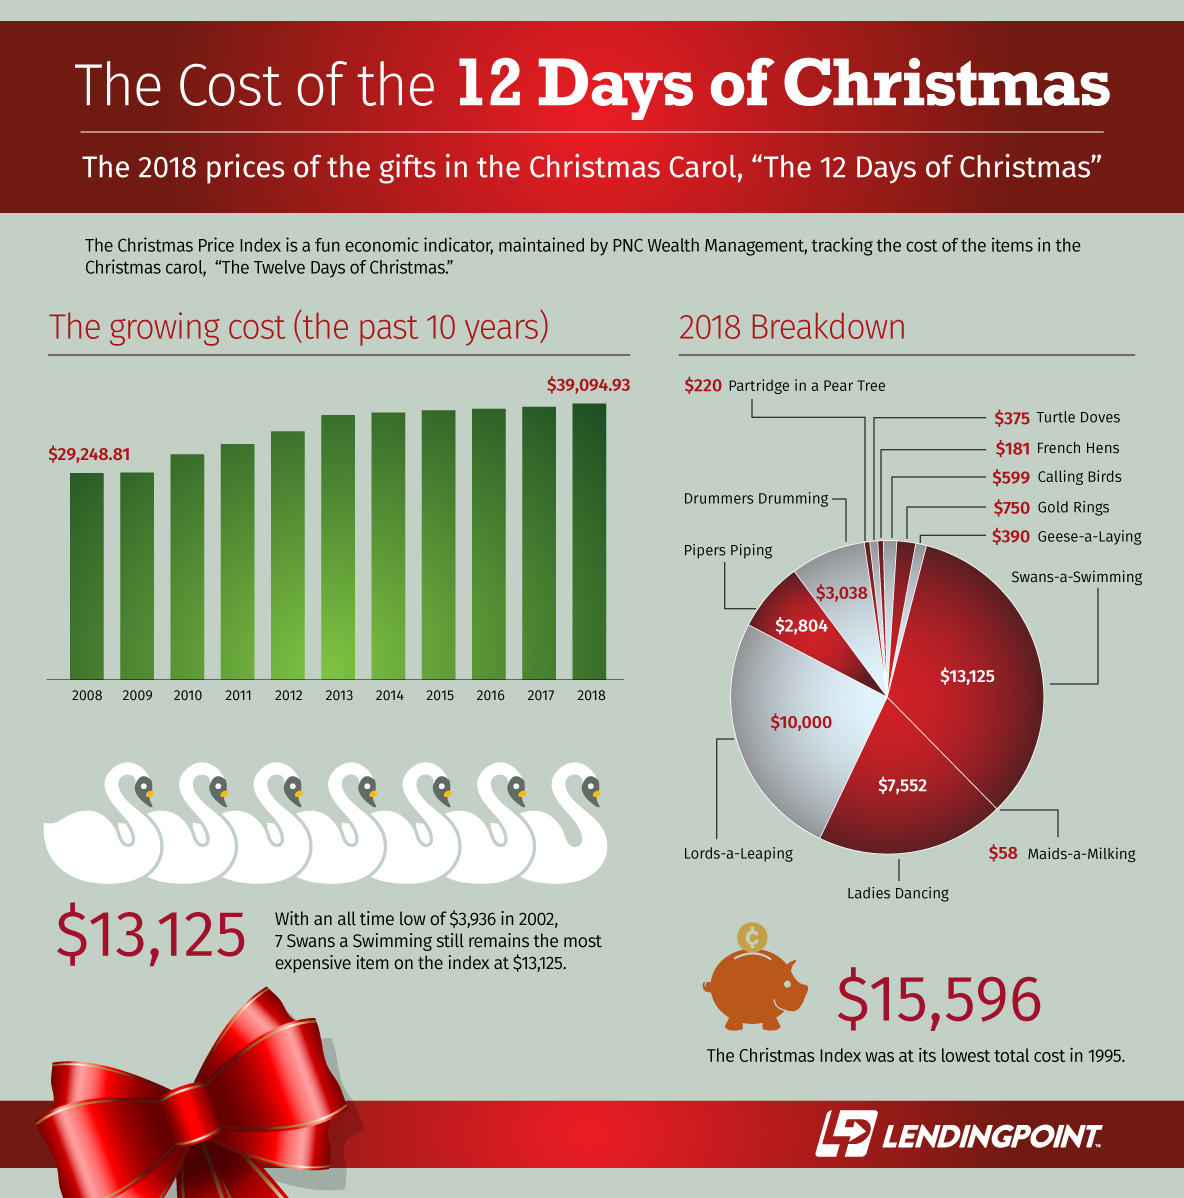 12 Days Of Christmas Costs.How Much Do The 12 Days Of Christmas Cost 2018 Edition Lendingpoint